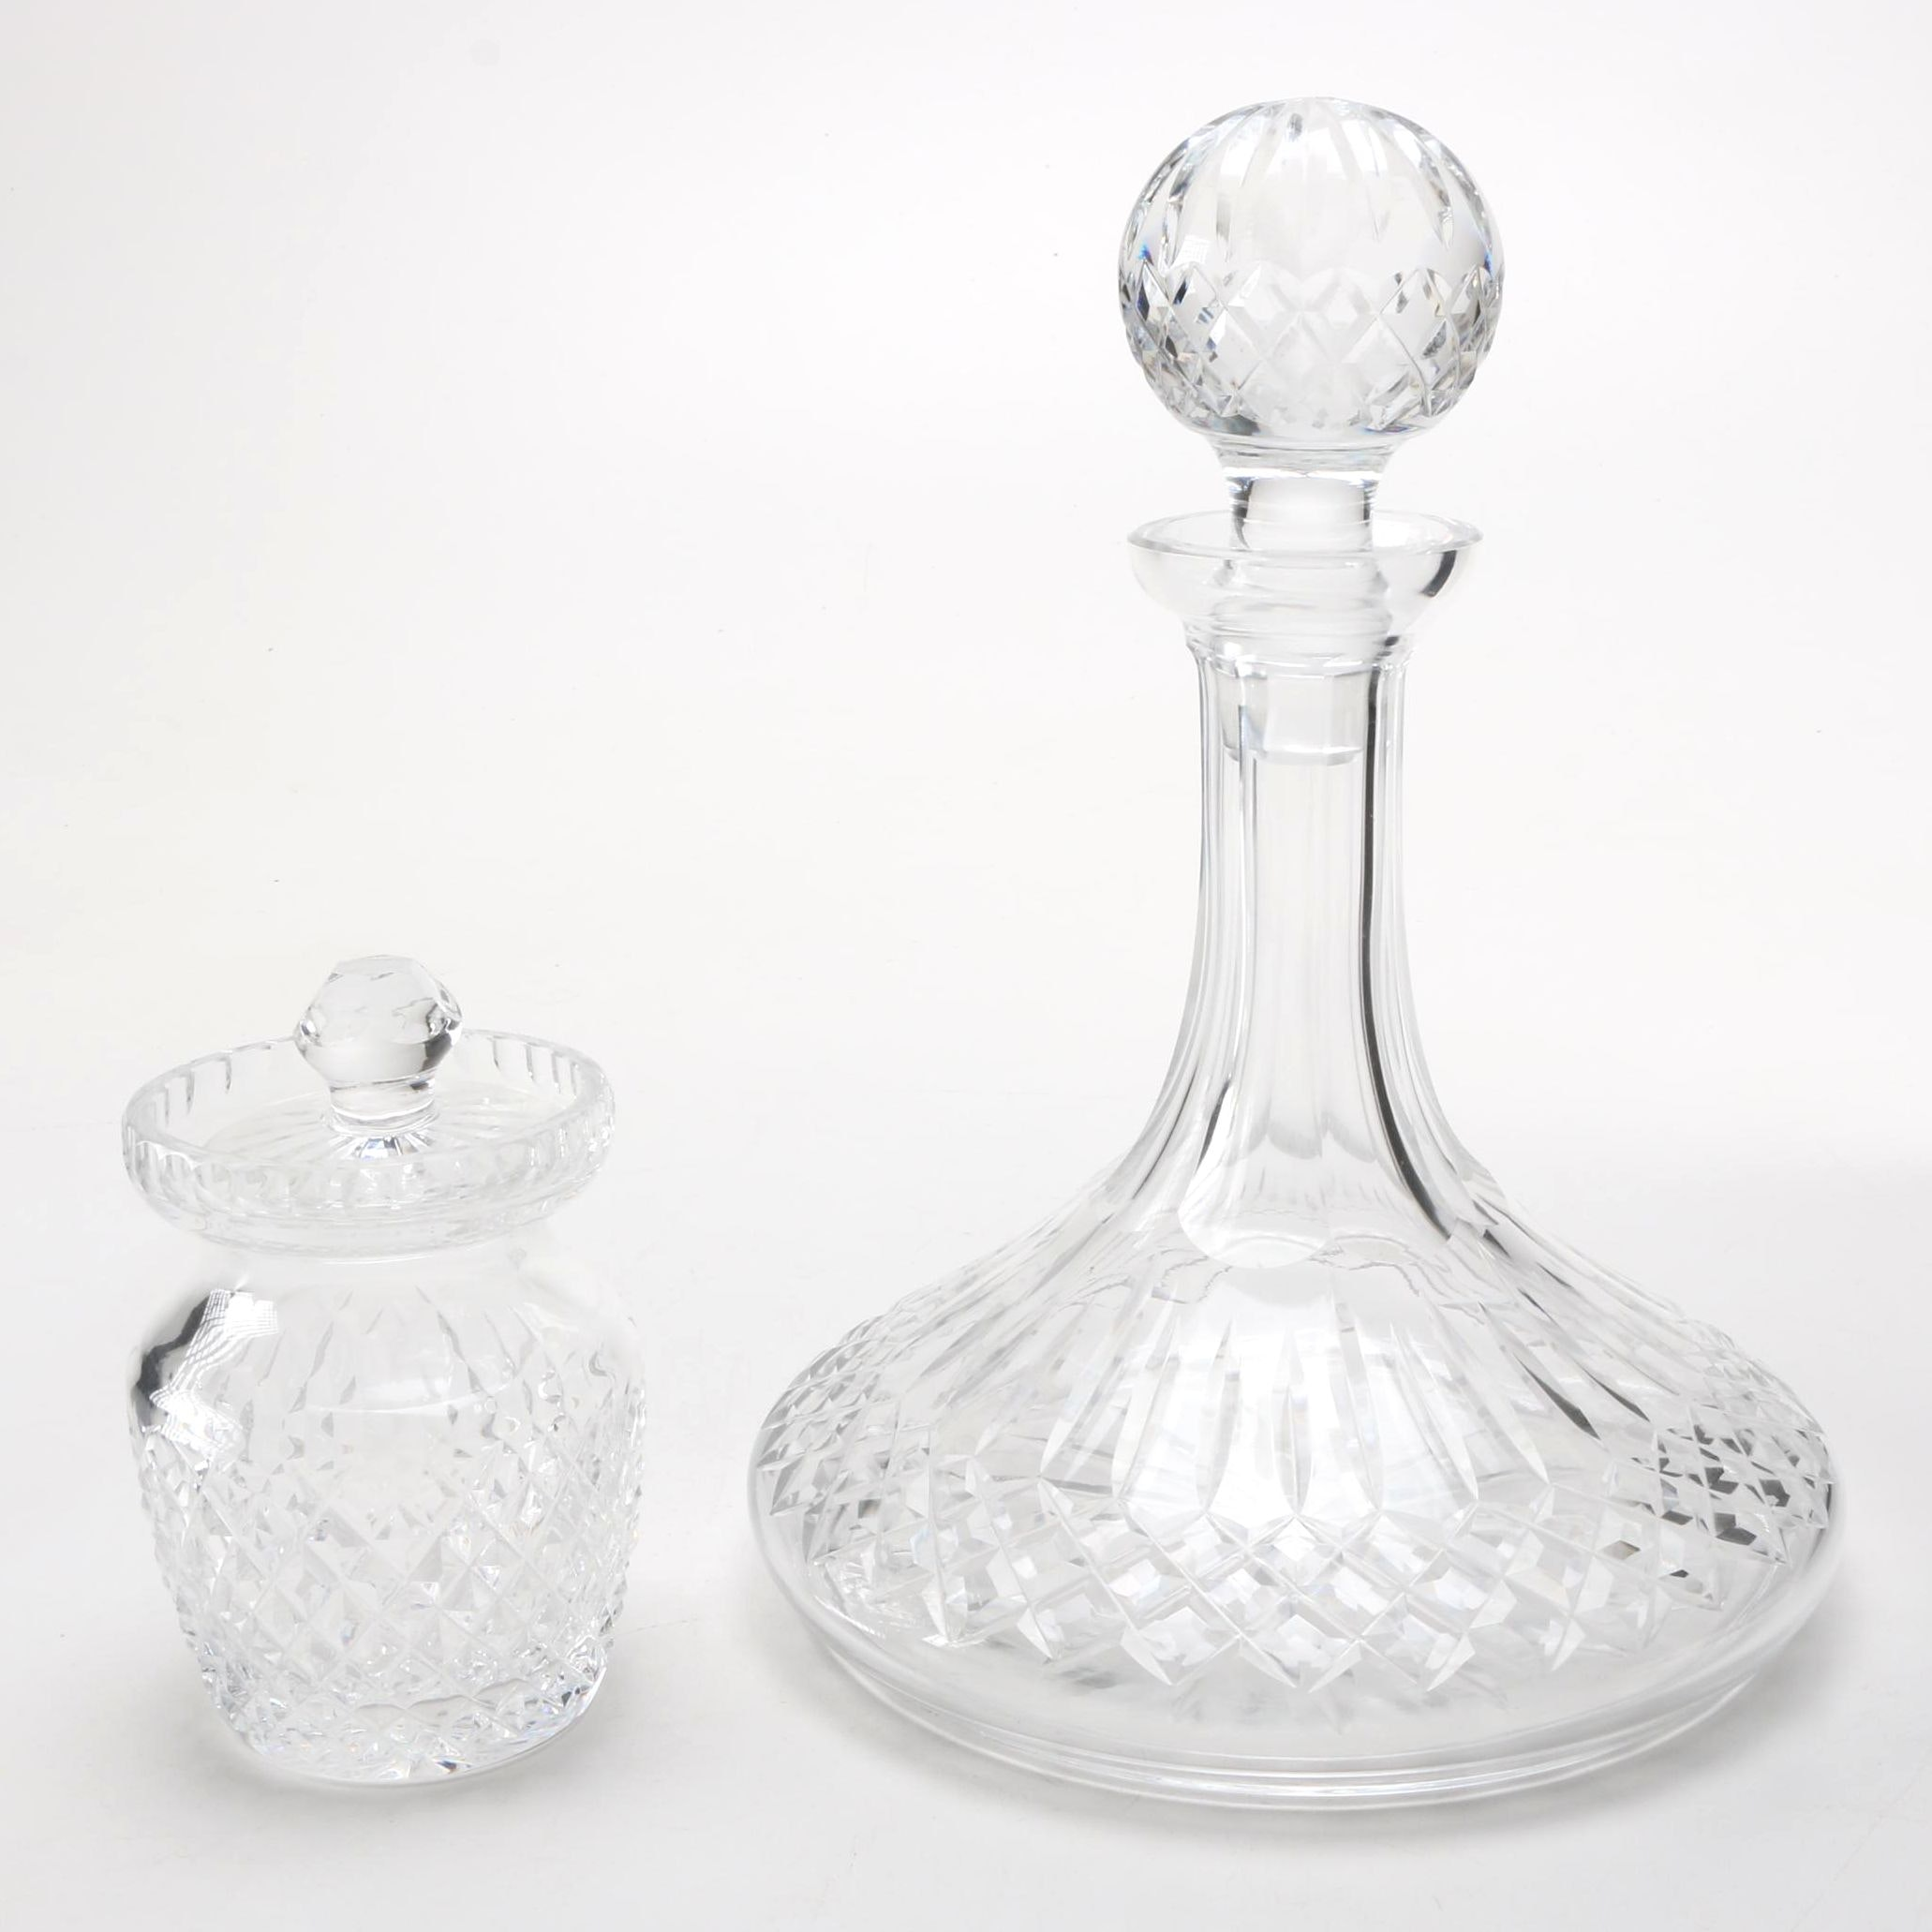 Waterford Crystal Decanter and Lidded Jar